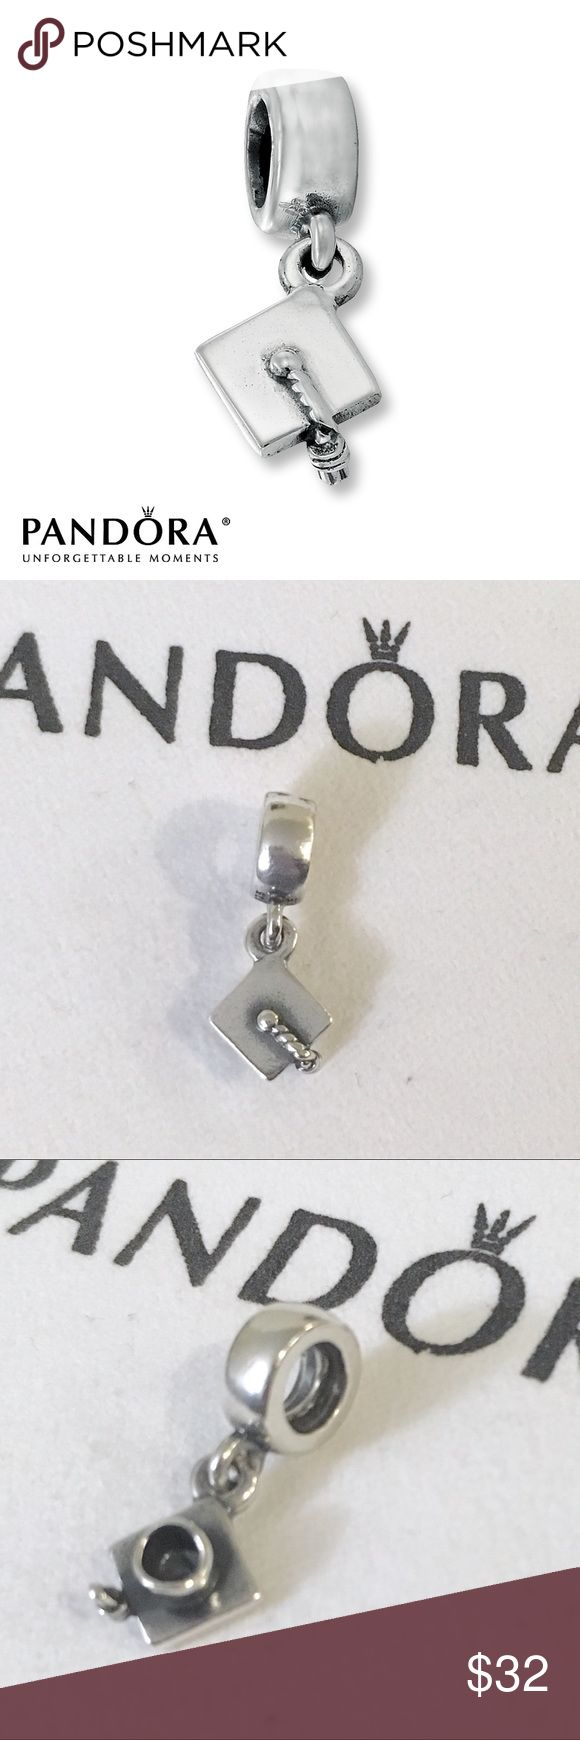 Pandora graduation cap sterling silver charm Authentic Pandora charm. Pandora graduation cap charm. Sterling silver, stamped with S925 and Ale underneath the dangle.   Bundle to save!  *Does not include the bracelet or cloth, sorry I do not have a box*  #Pandora graduation Charm, Pandora graduation cap dangle charm, pandora high school graduation, Pandora college graduation, Pandora Sterling silver charm, pandora graduation hat charm Pandora Jewelry Bracelets